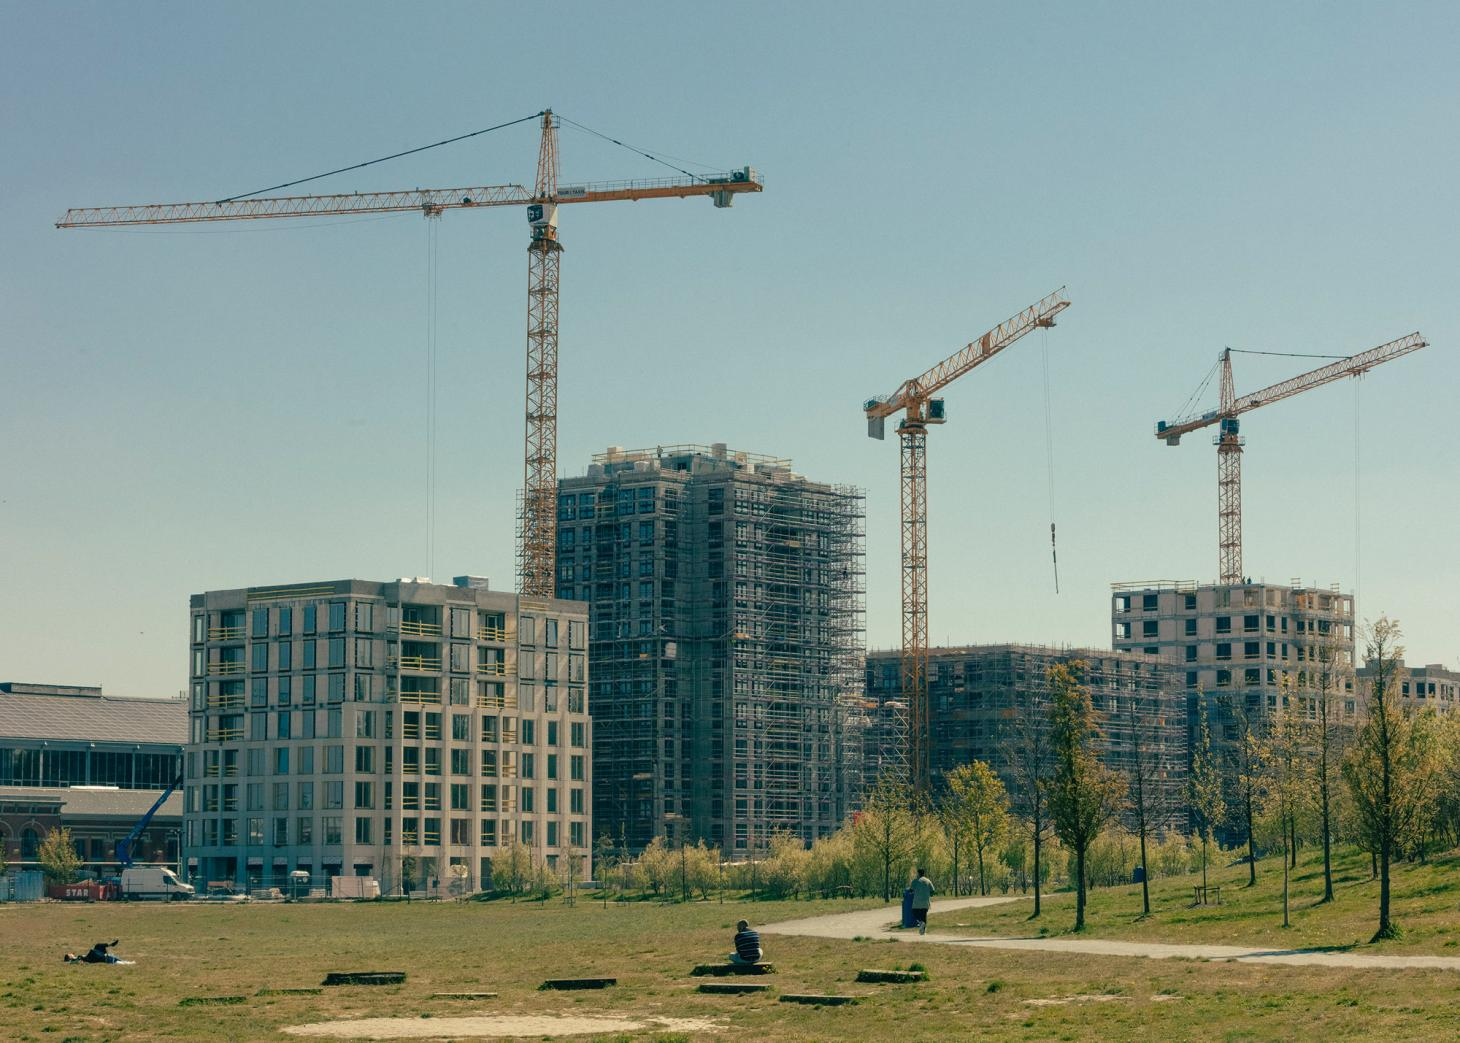 view of new buildings being built at Tour & Taxis district in Brussels